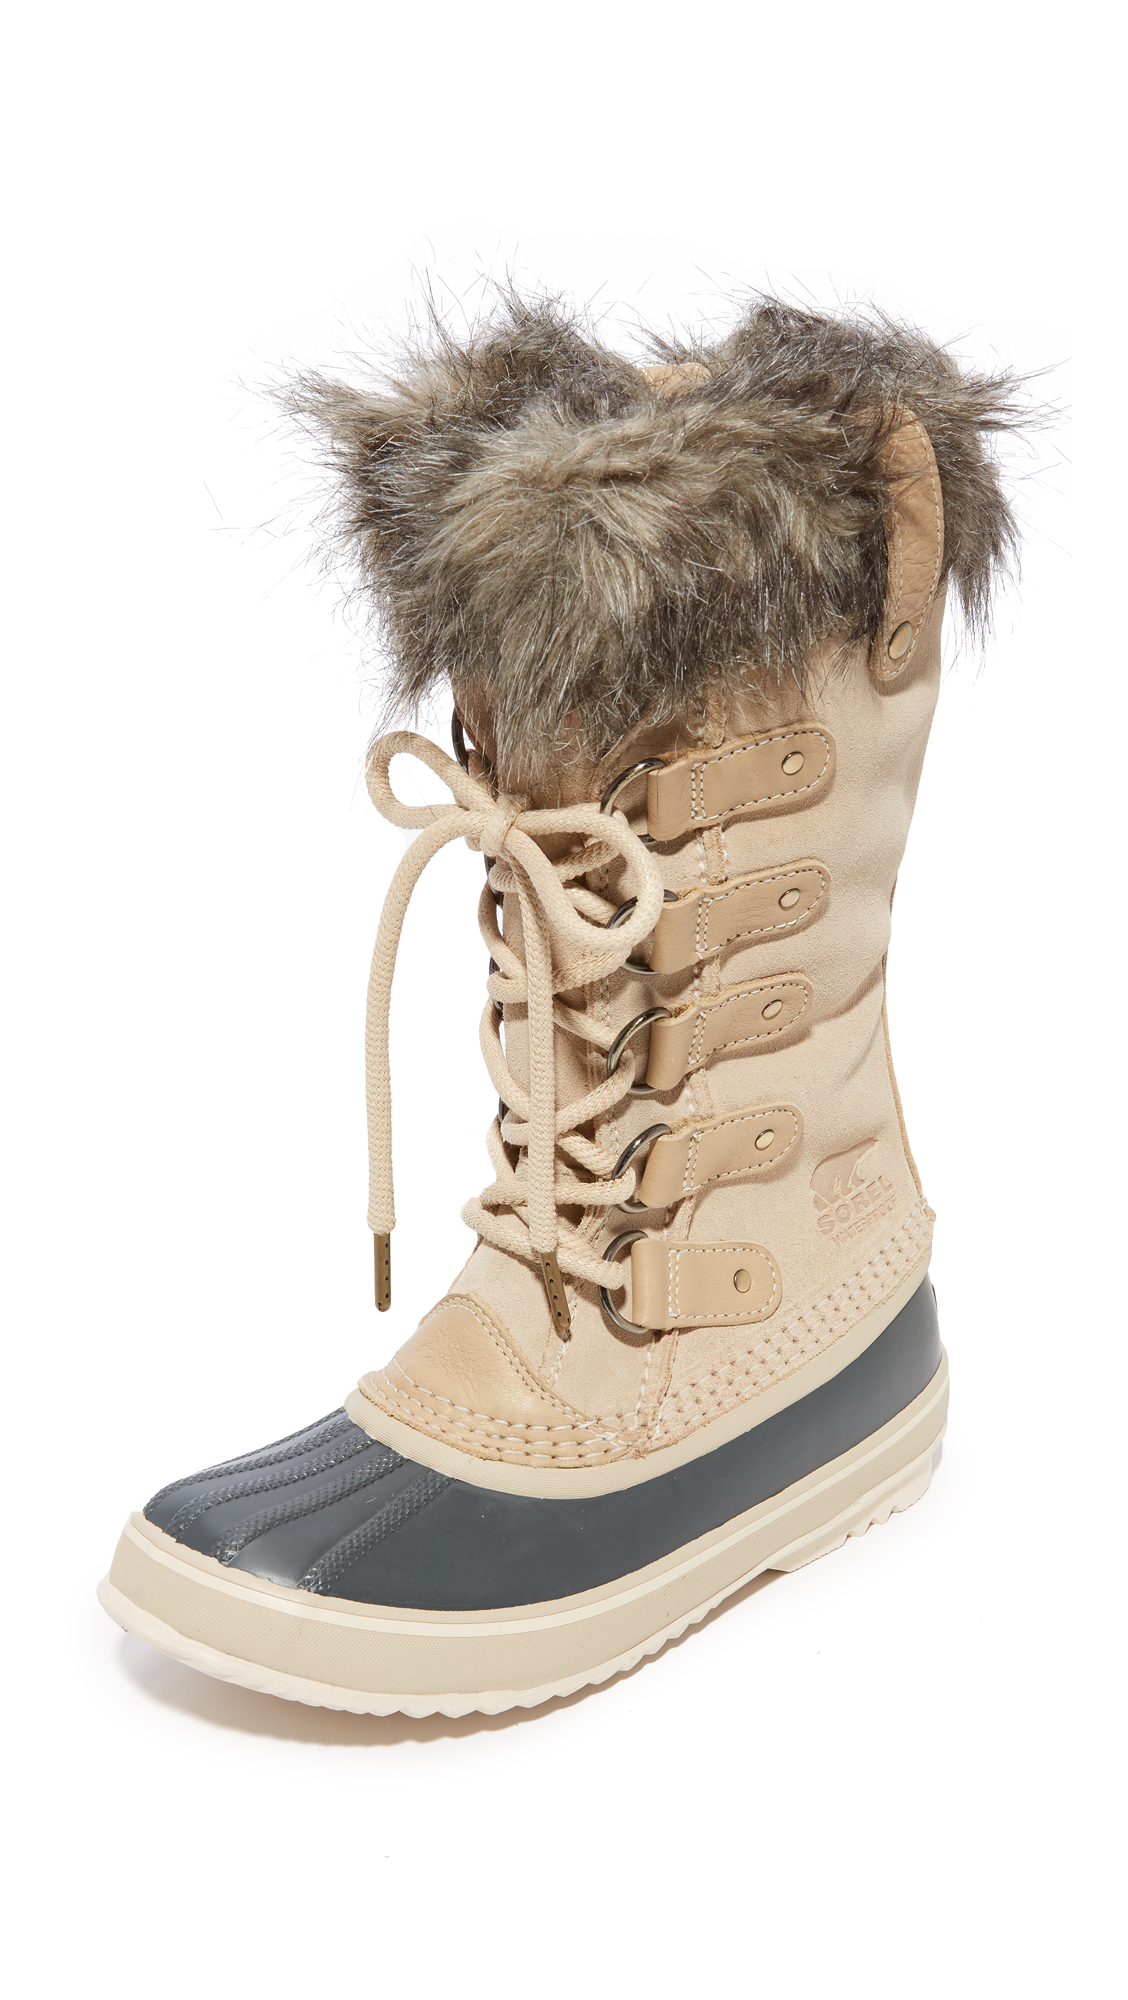 Sorel Joan of Arctic Boots - Oatmeal